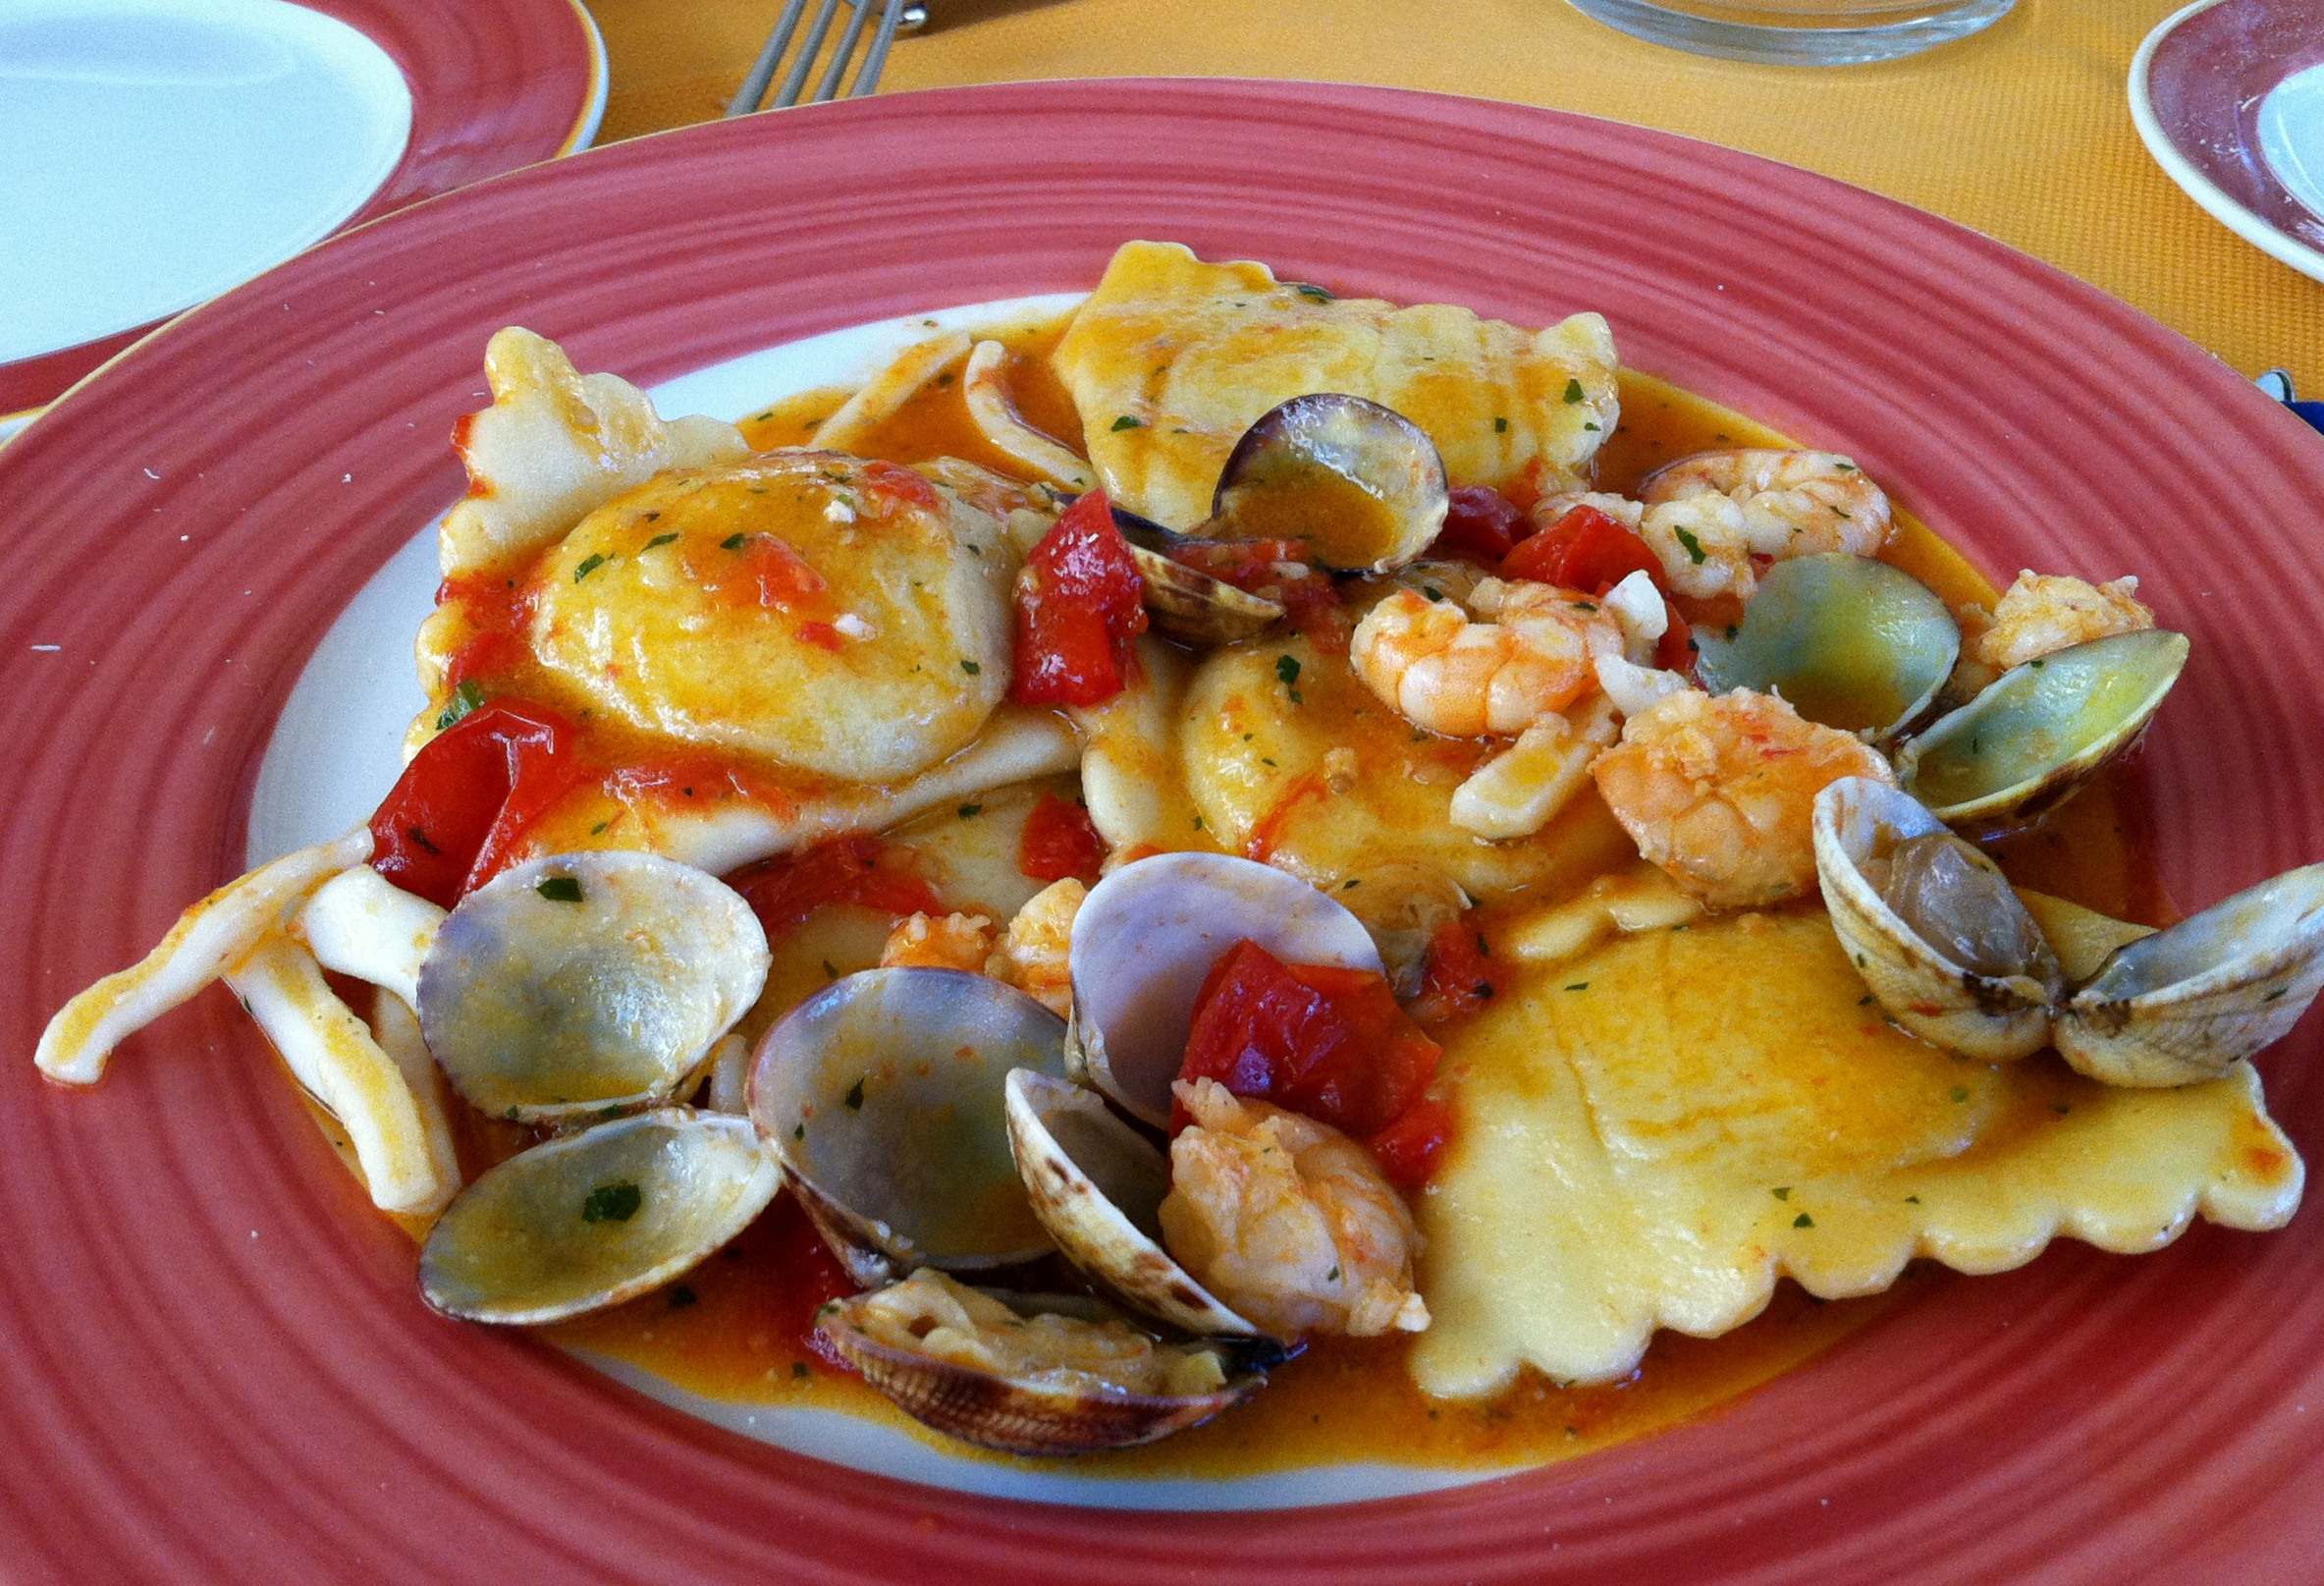 Ravioli with clams, shrimp, and calamari. O dio mio!